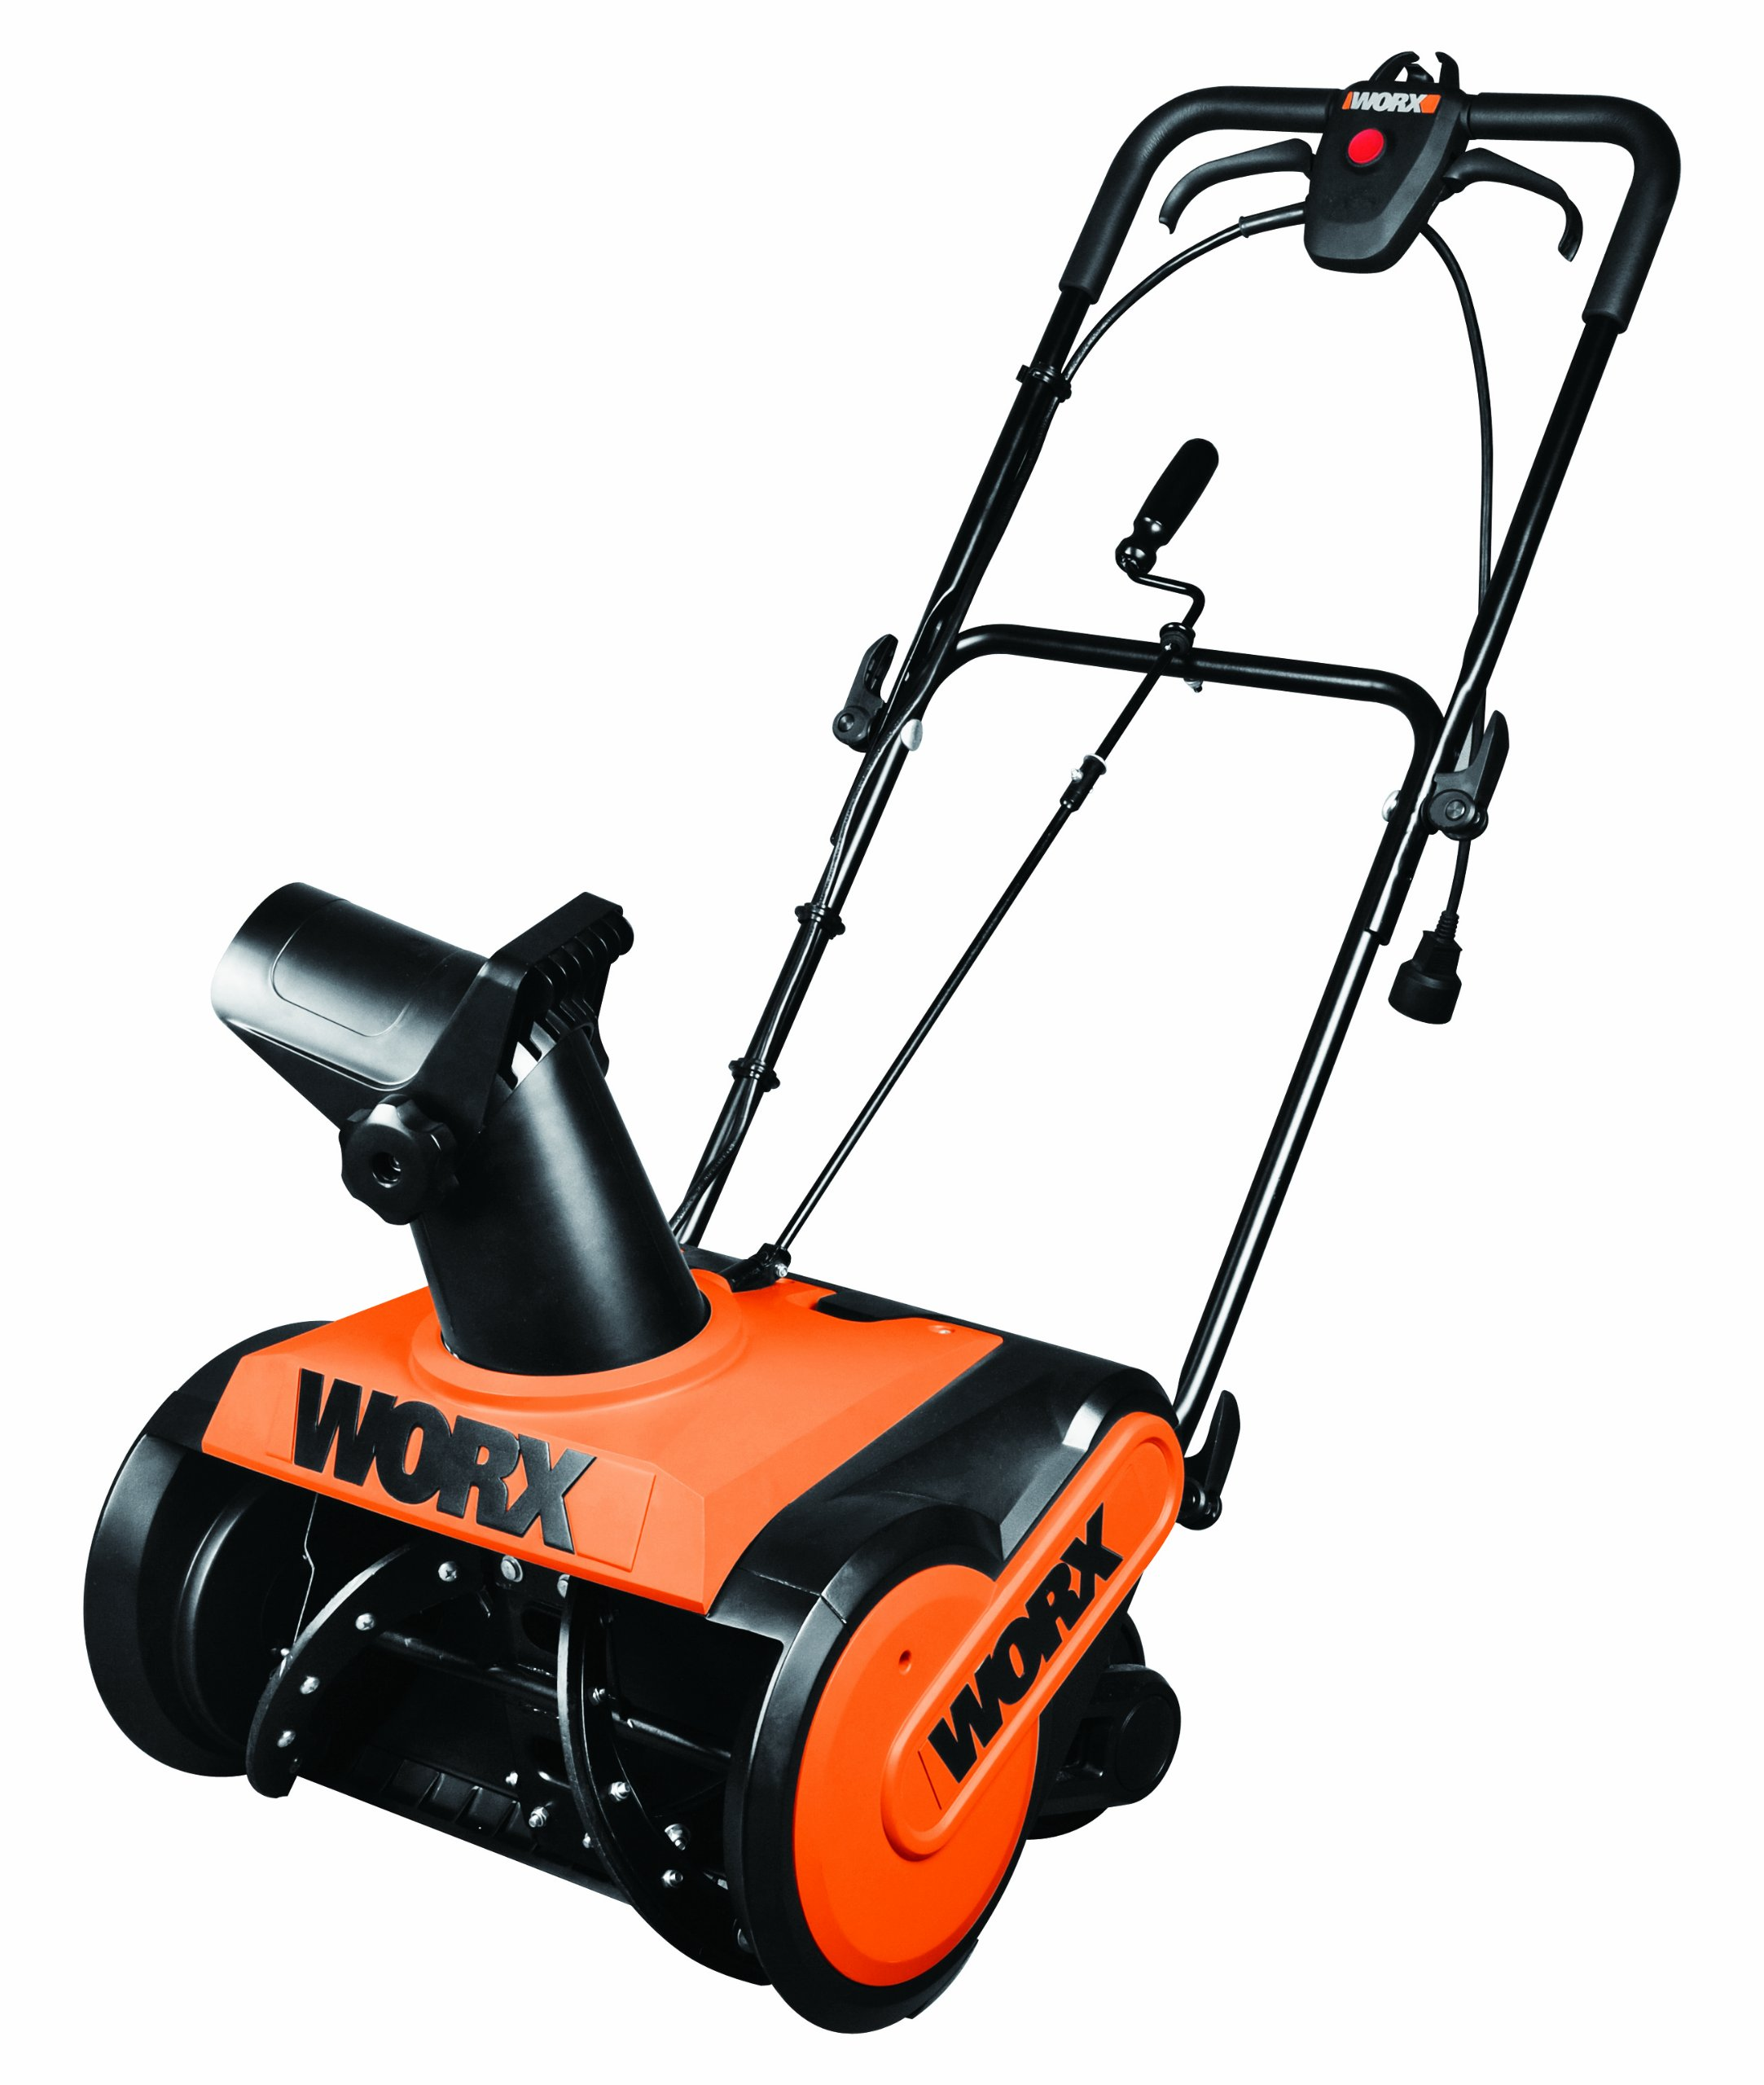 WORX WG650 13 Amp 18'' Electric Snow Thrower by WORX